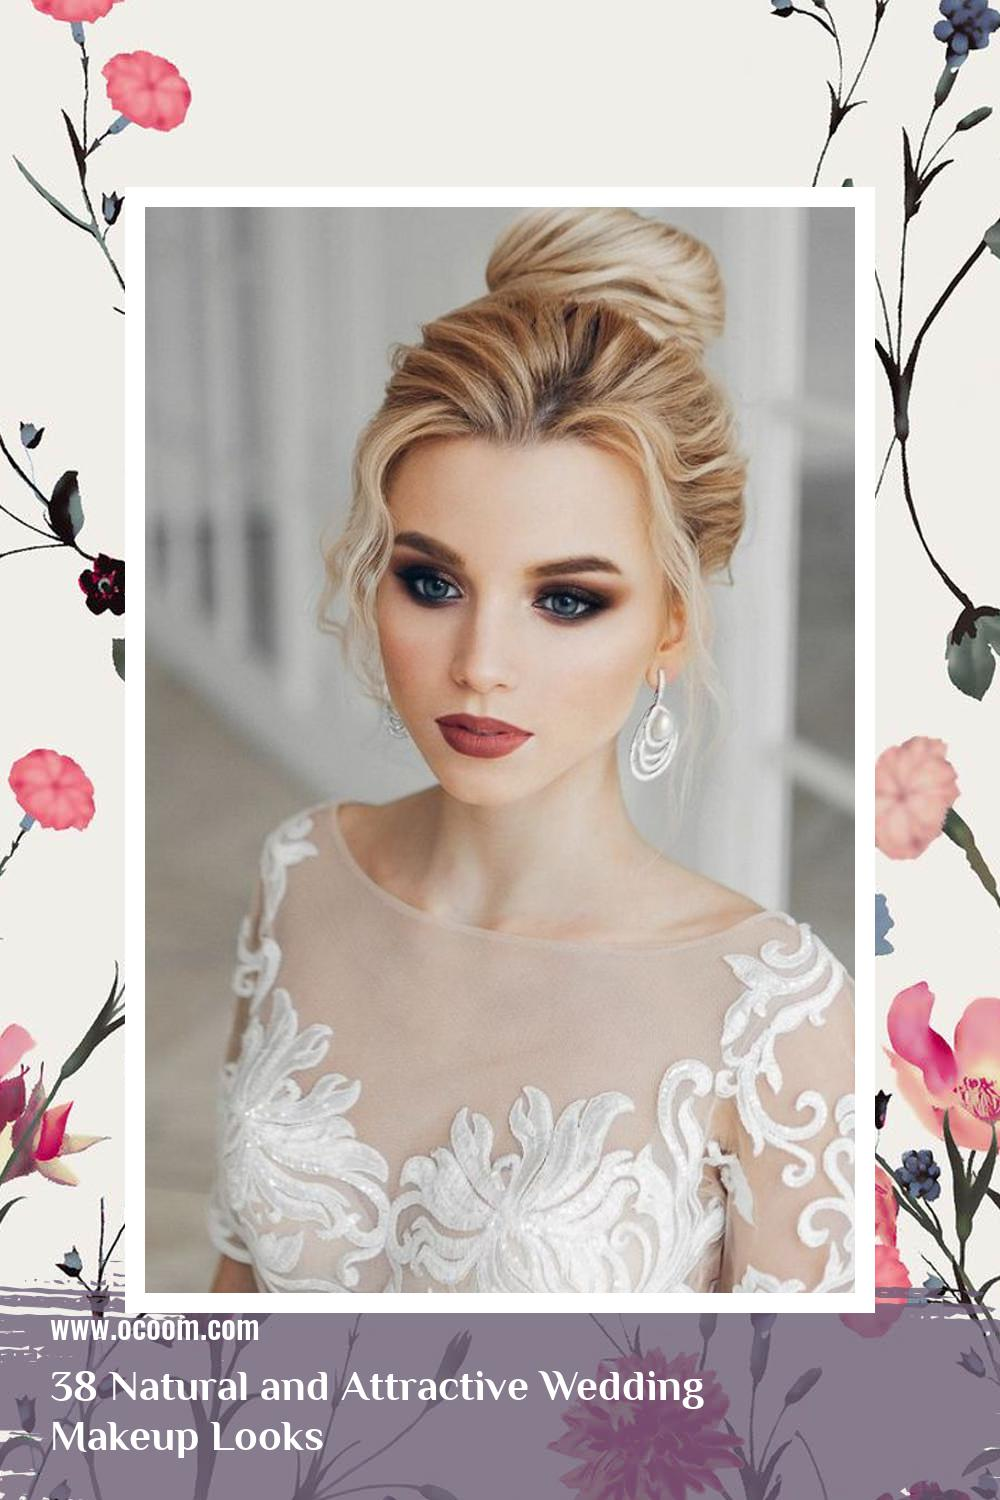 38 Natural and Attractive Wedding Makeup Looks 4